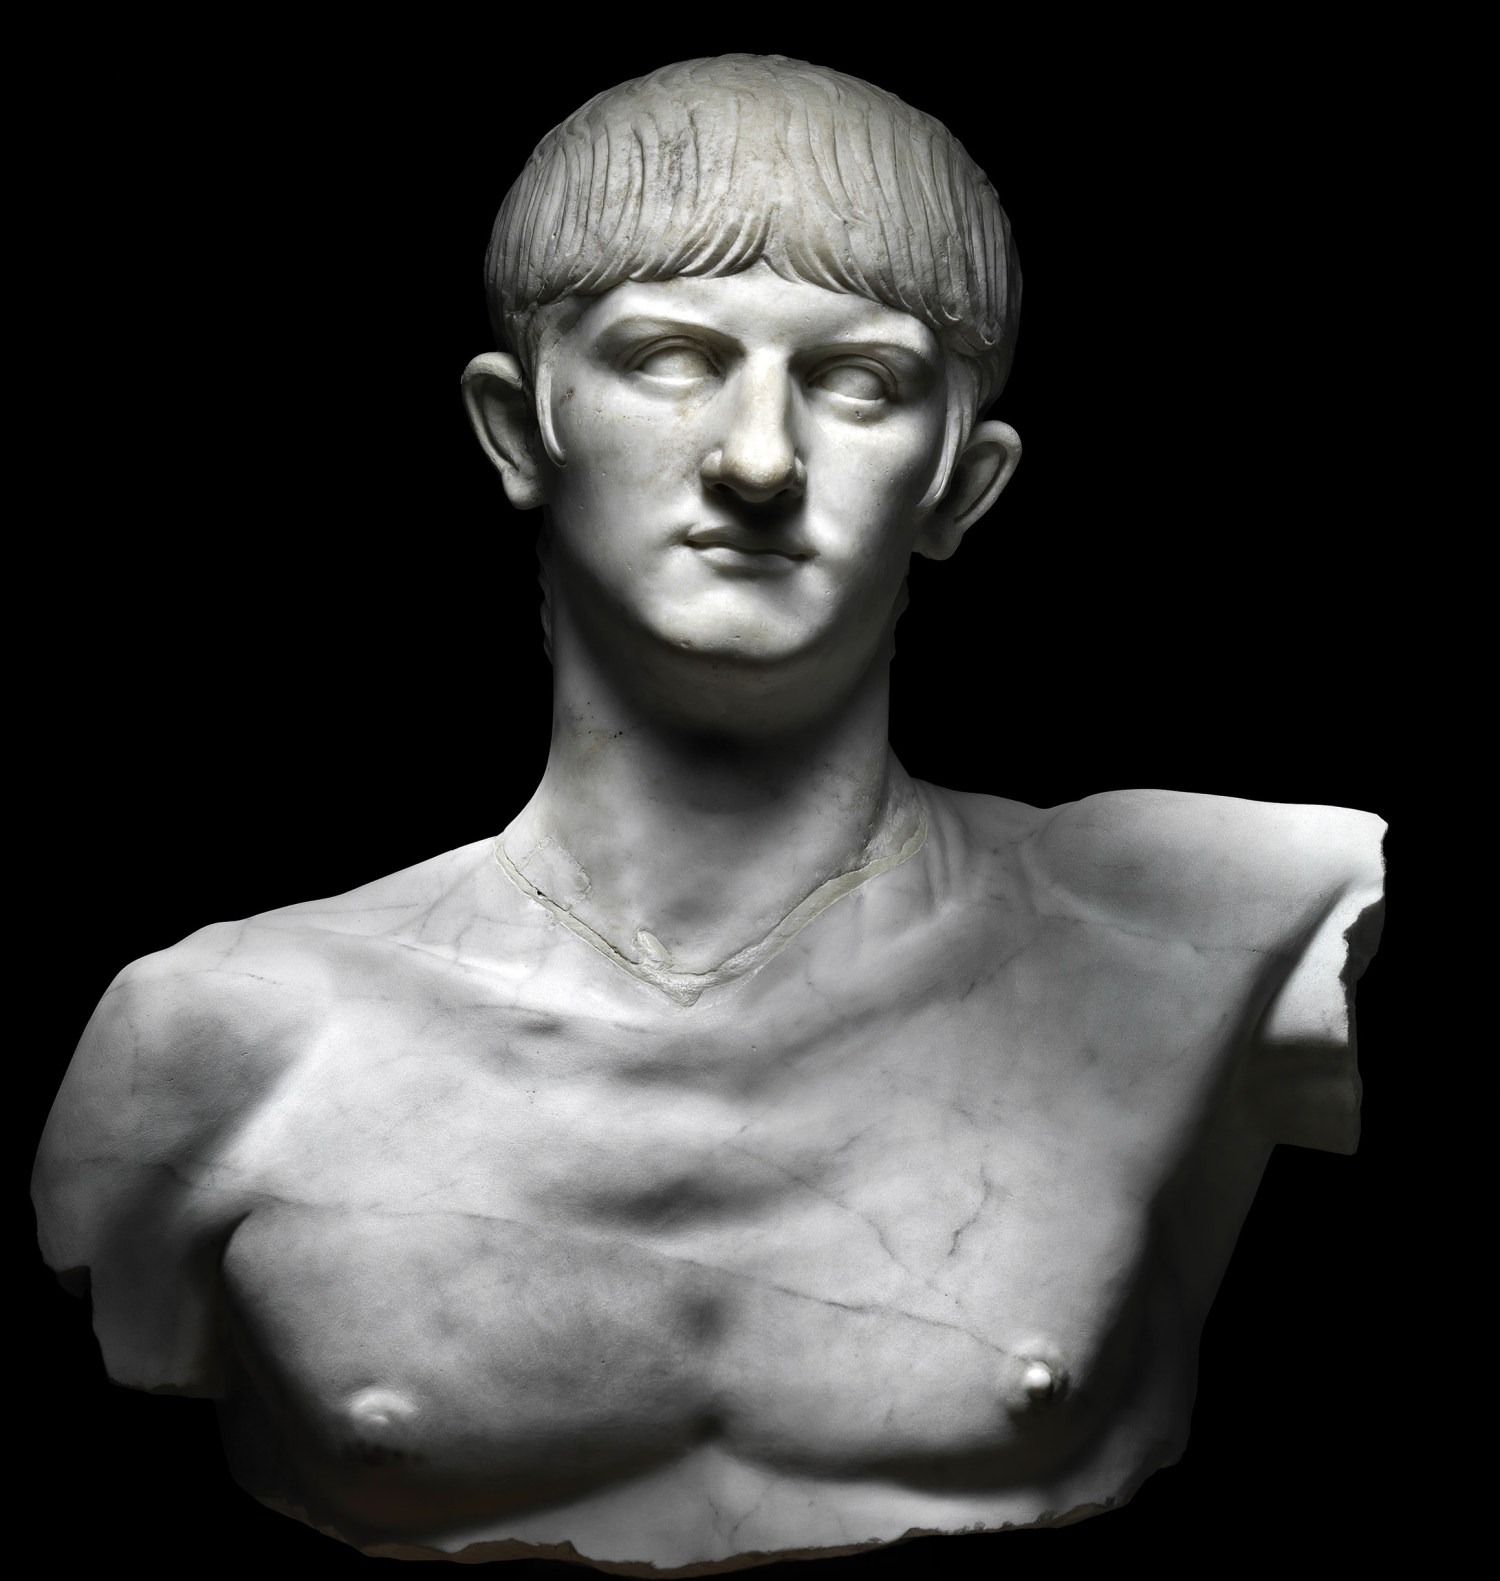 left Nero, in the form of a marble statue created within a few years of him becoming emperor in AD 54. His hairstyle differed from that of previous emperors, and according to the ancient authors so too did his general approach to the role. It is illuminating to compare and contrast their hostile accounts with objects created